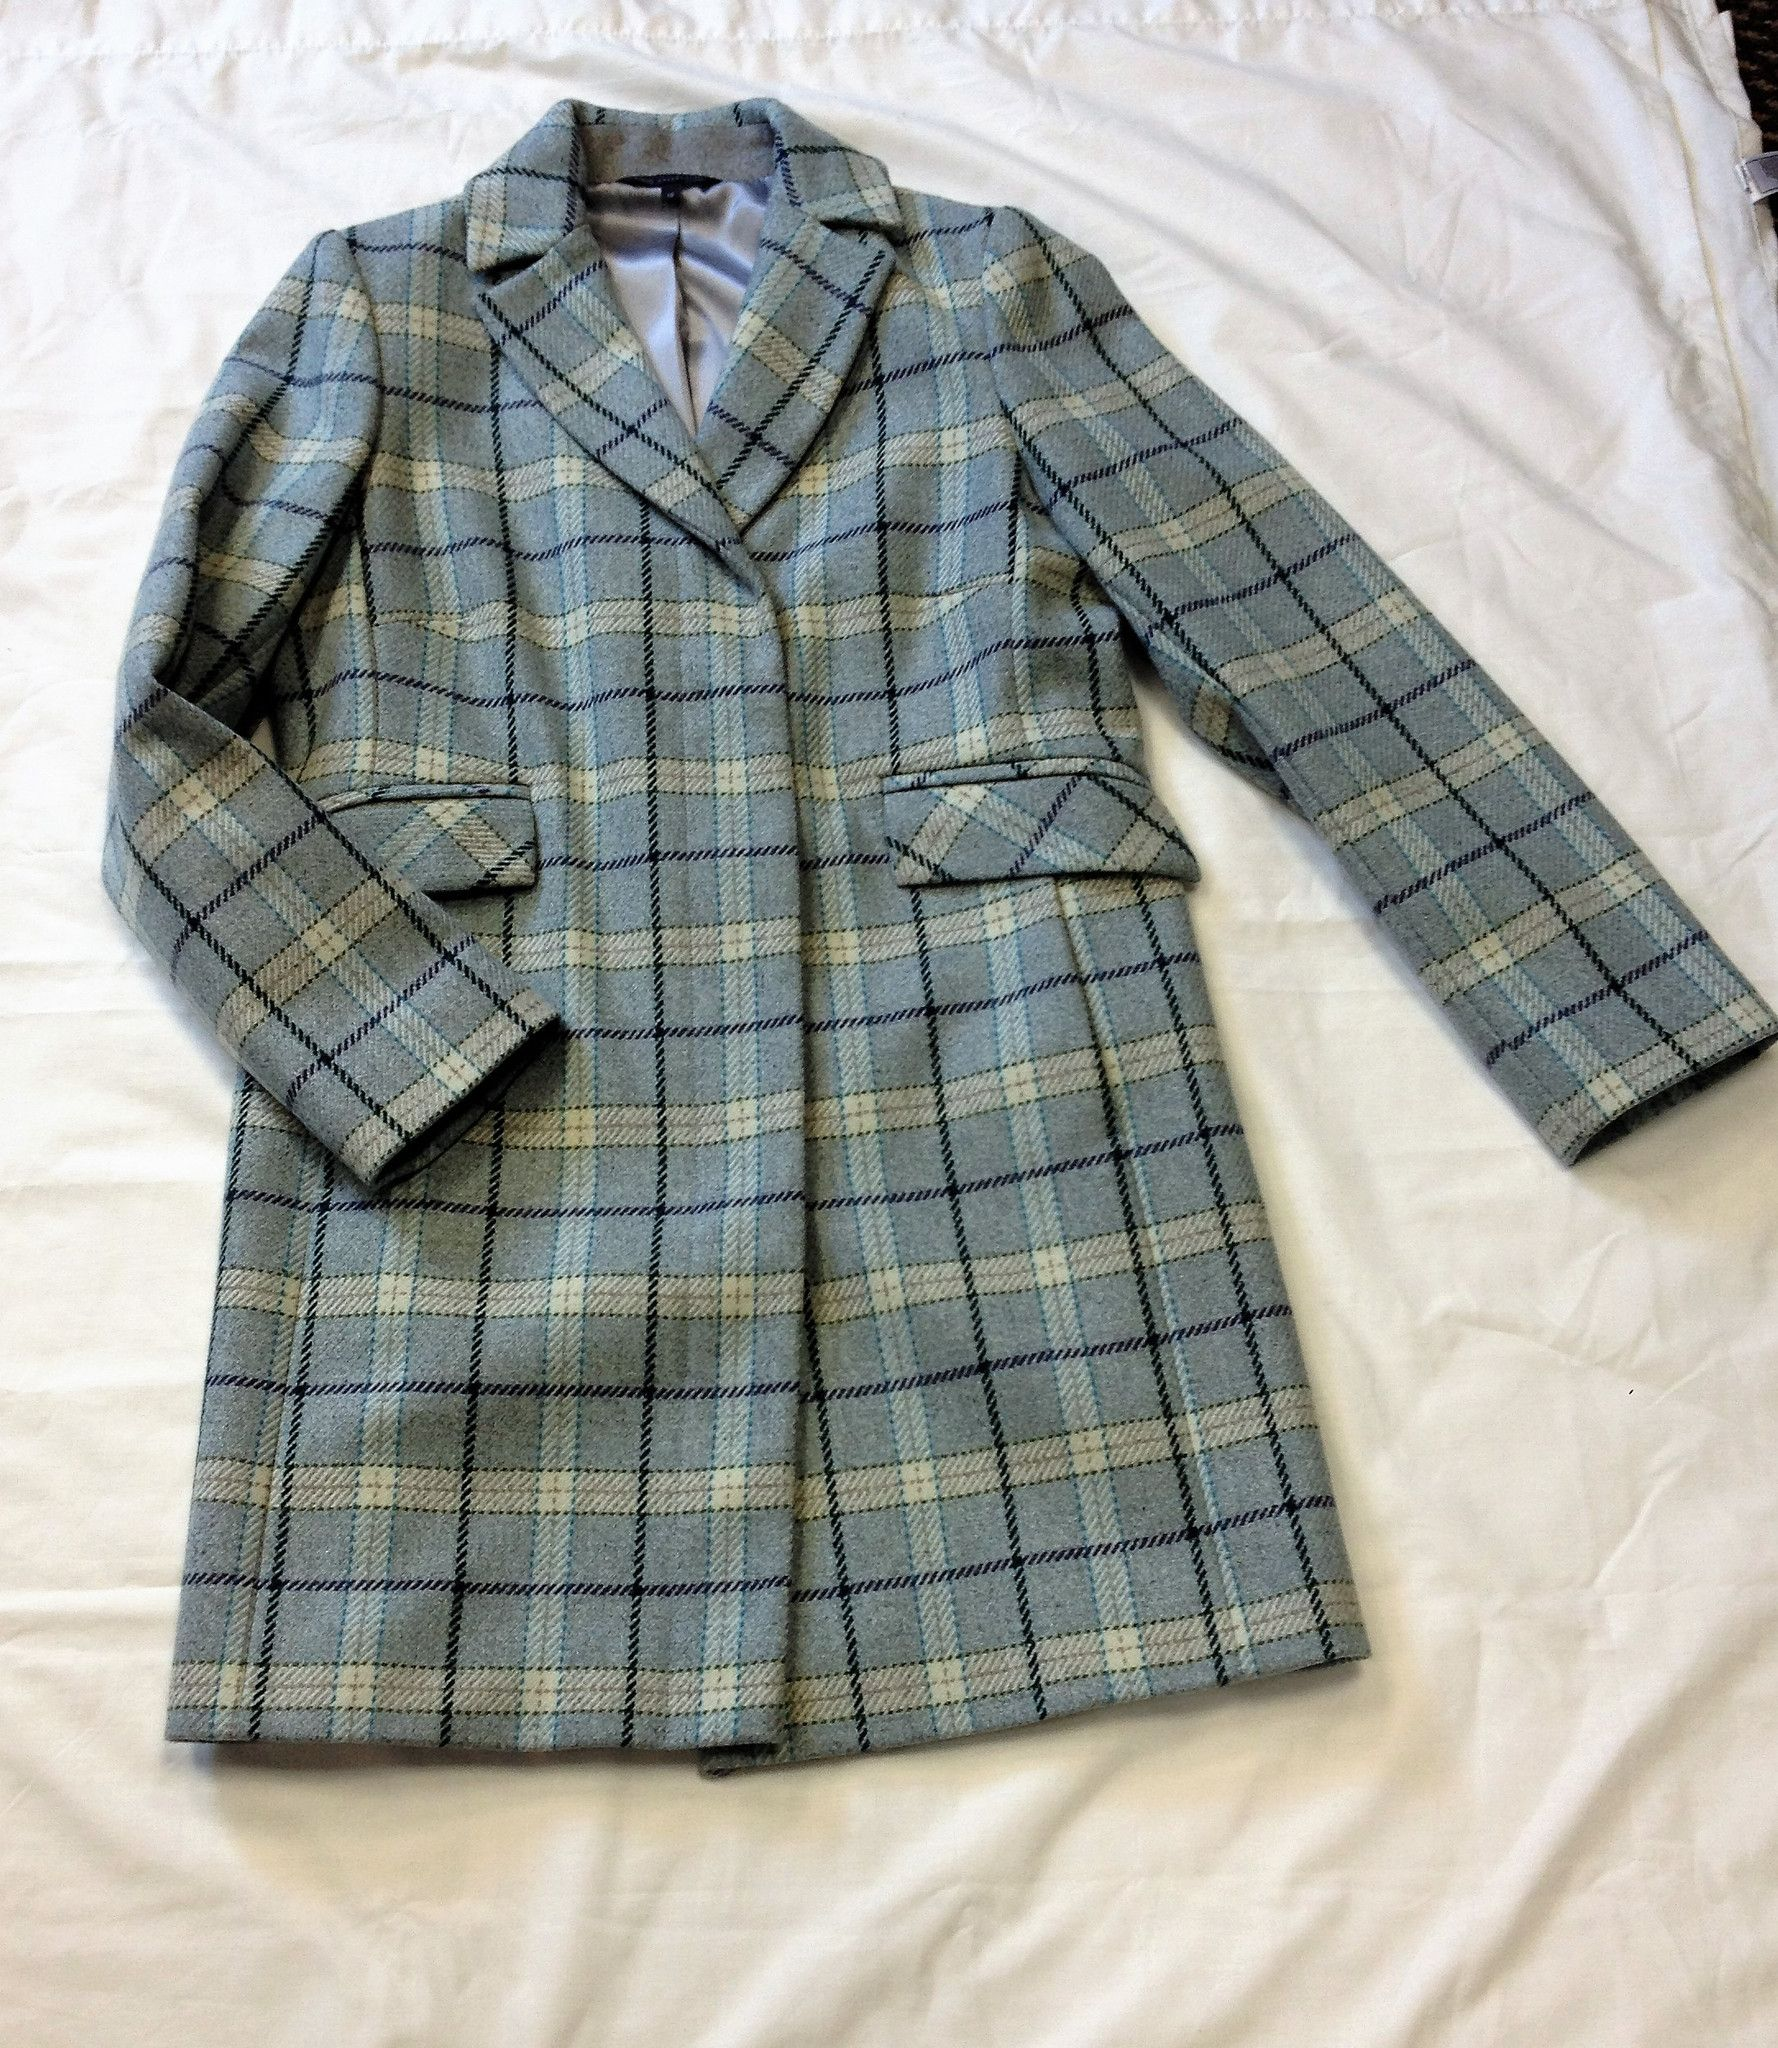 MARKS & SPENCER COLLECTION BLUE CHECK WOOL BLEND COAT SIZE 10 RRP £110 *BNWOT*